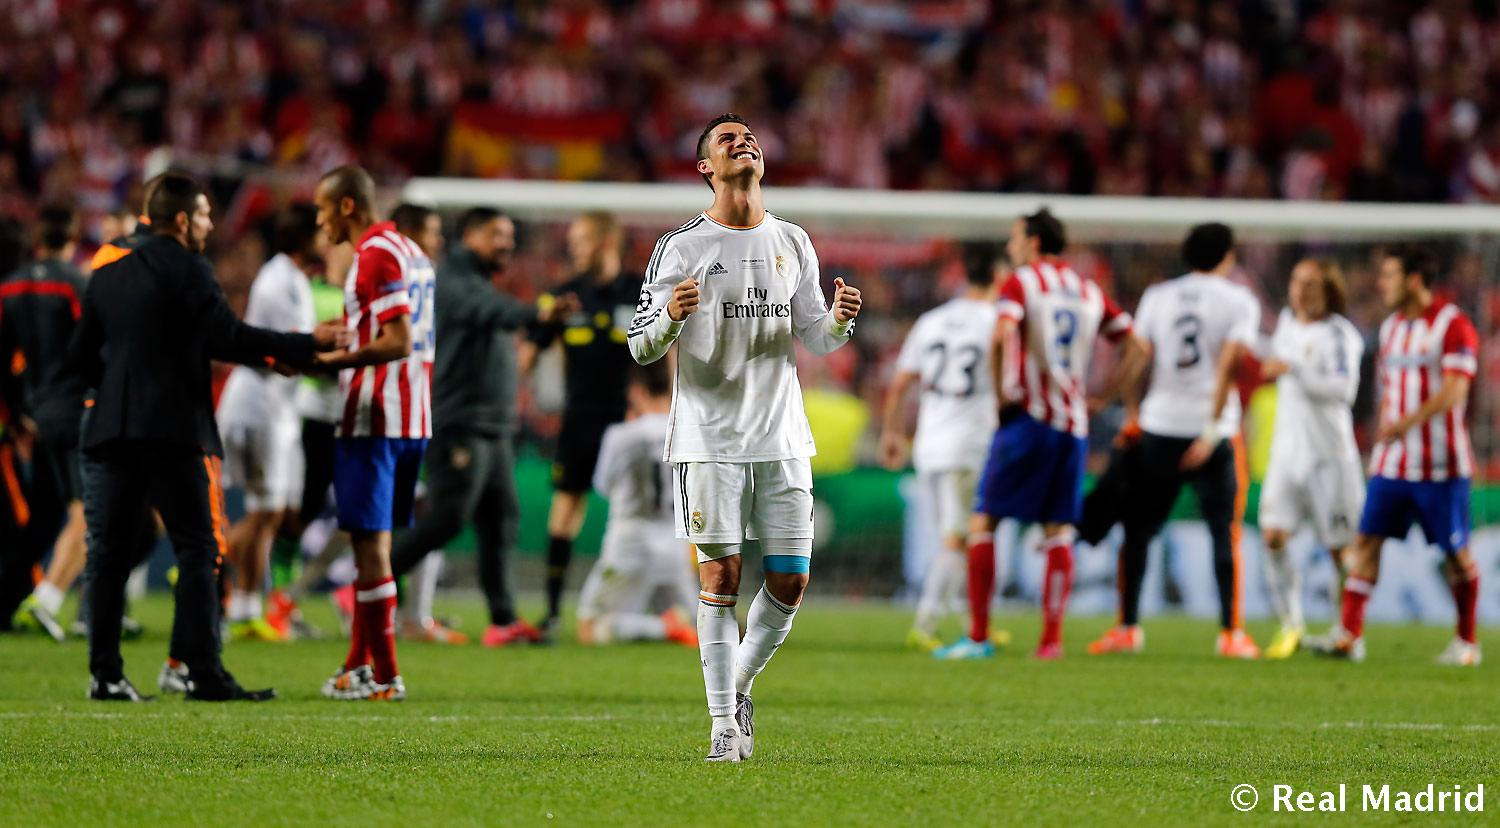 Real Madrid - Real Madrid - Atletico de Madrid - 25-05-2014